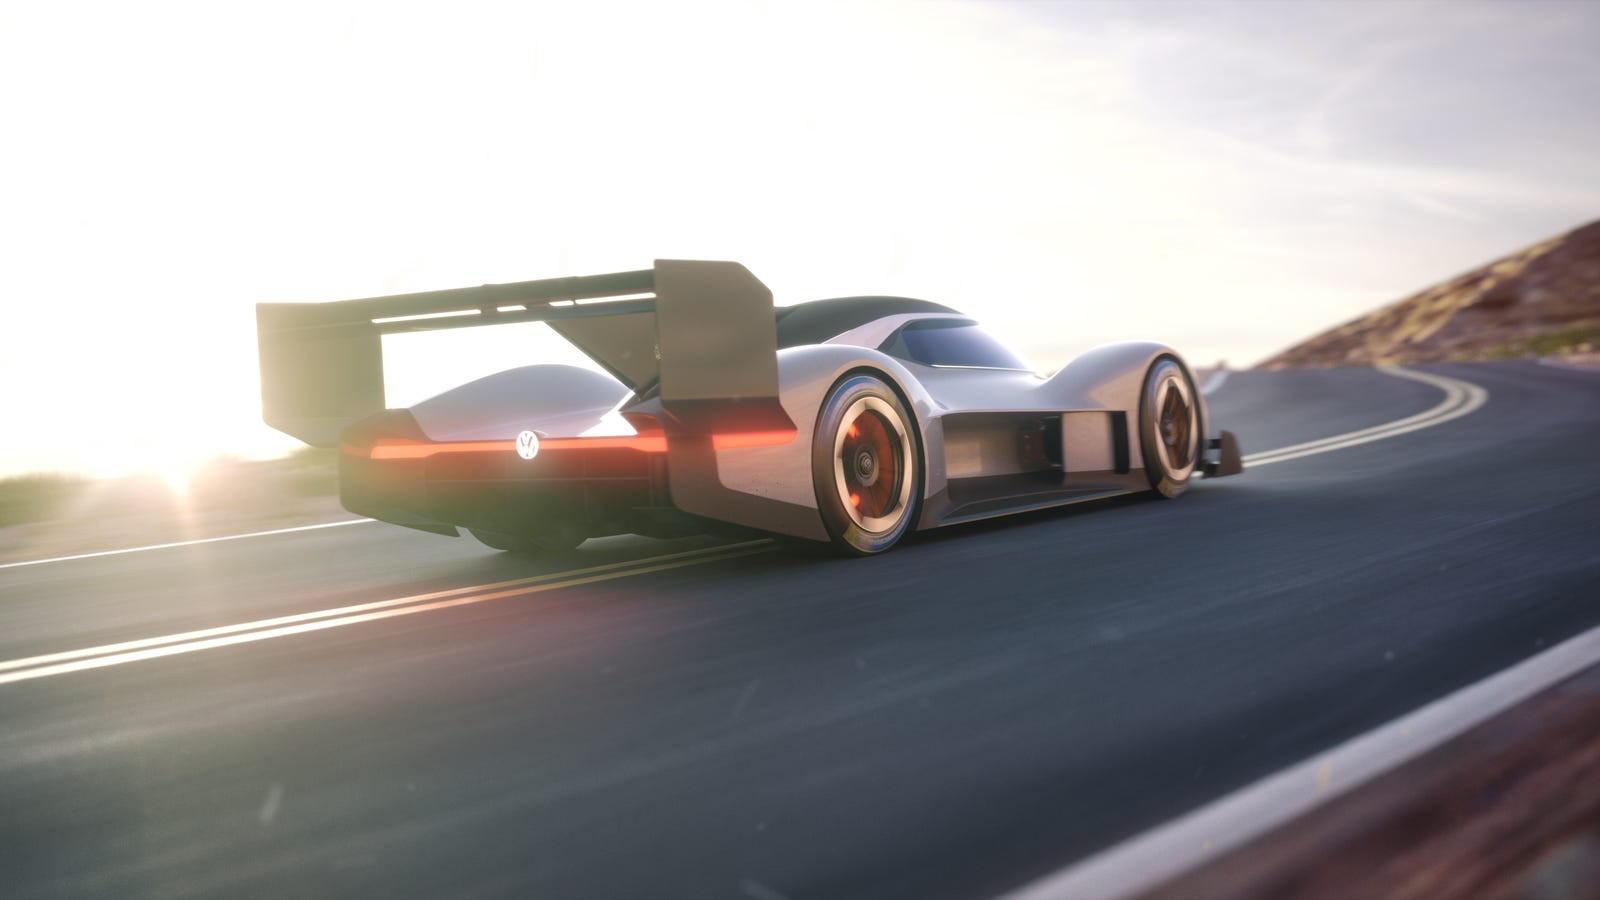 Volkswagen's All-Electric Pikes Peak Race Car Looks Like Something From Our Terrifying Sci-Fi Future